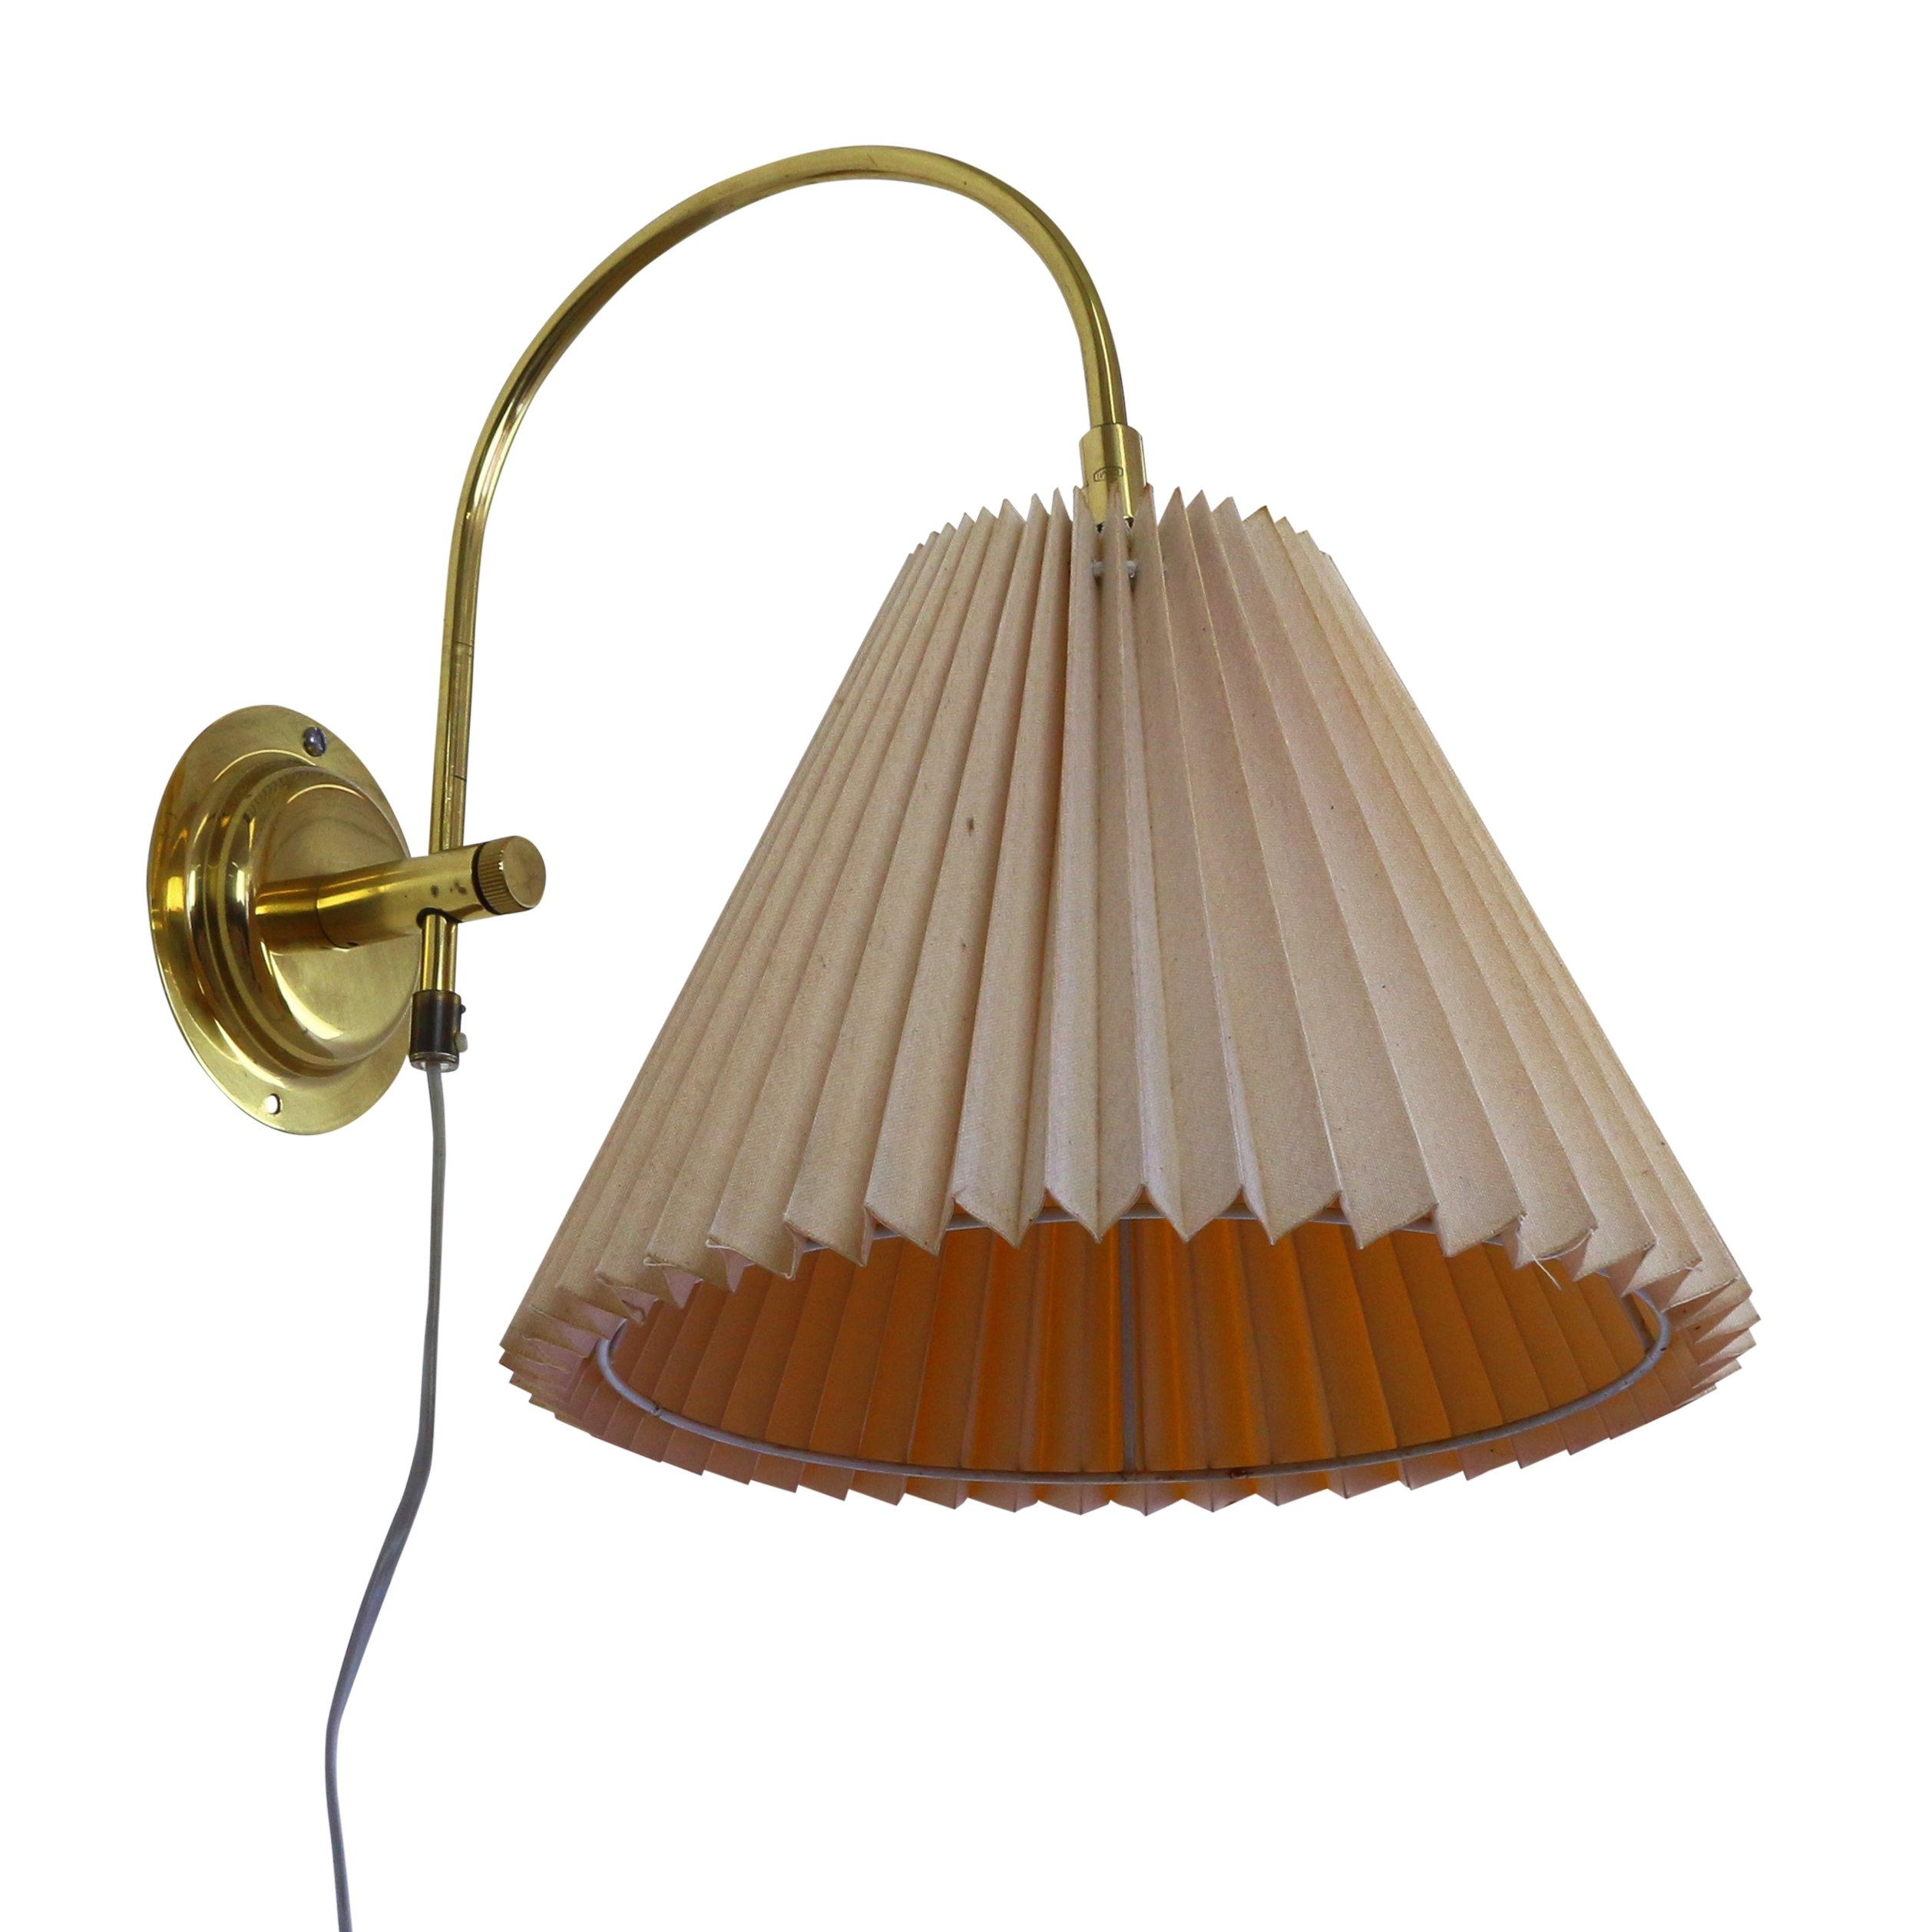 Danish wall light from the seventies by Dar? Belysning #1109